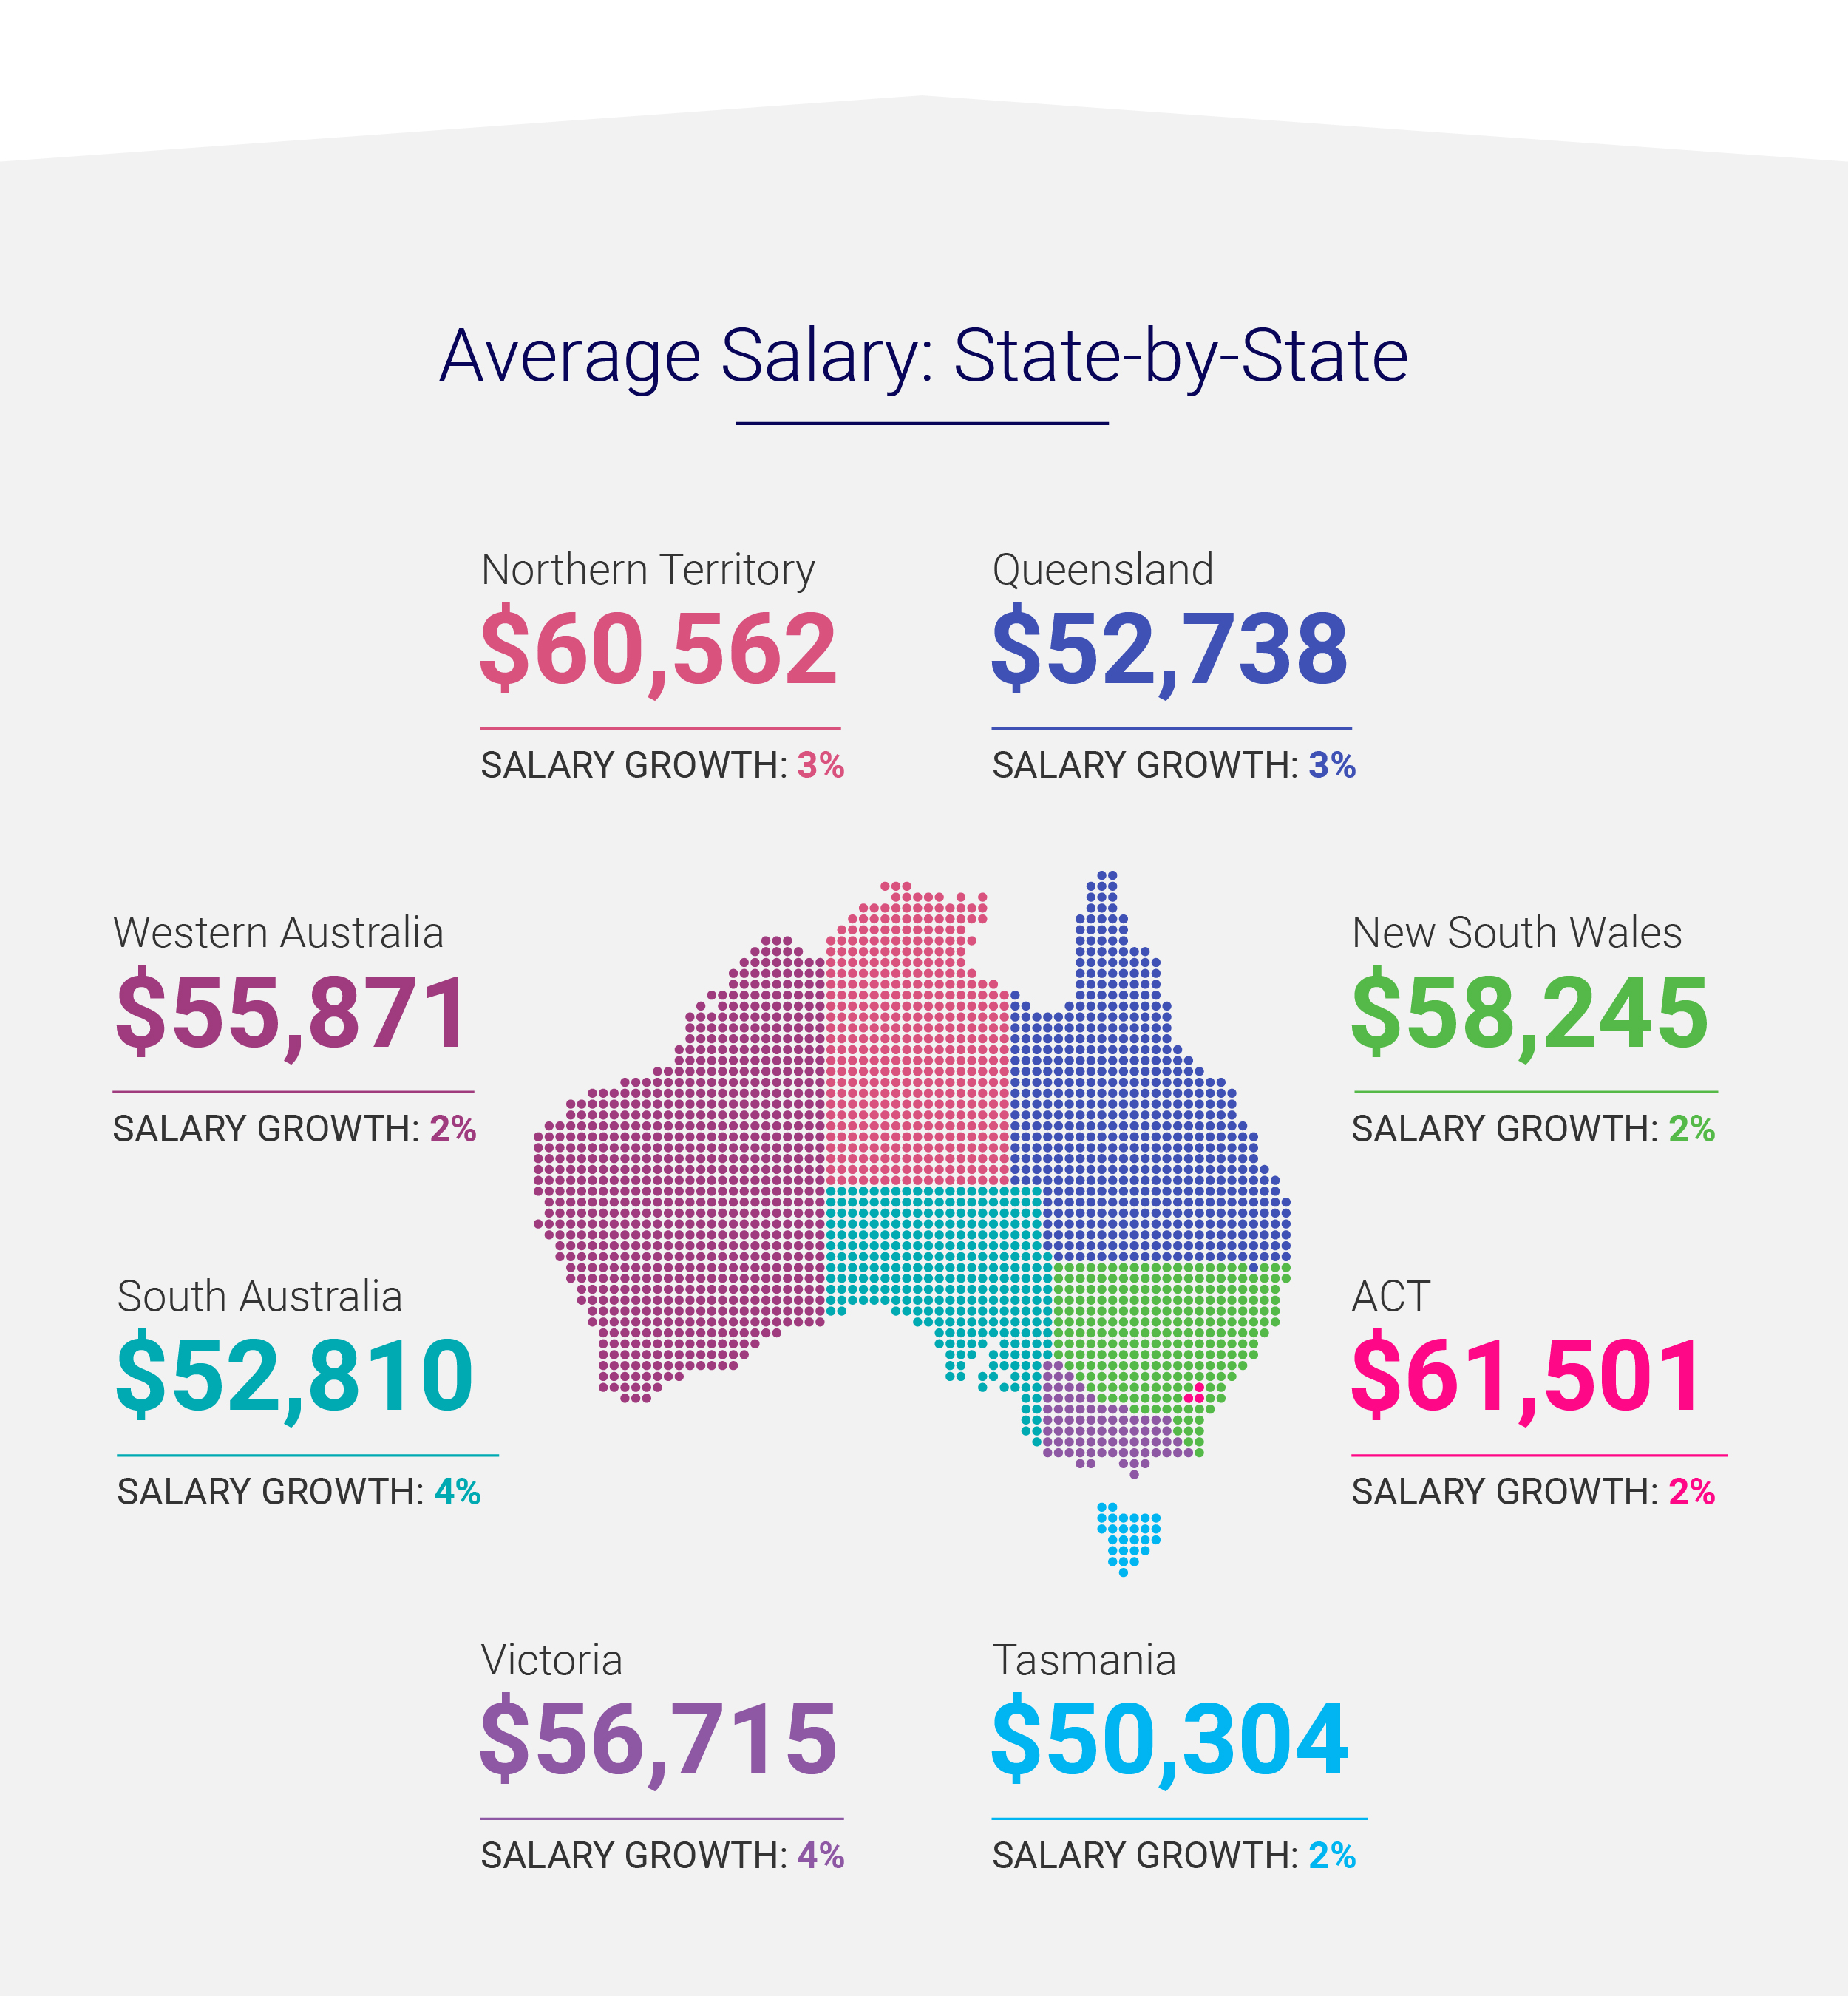 Average salary state by state